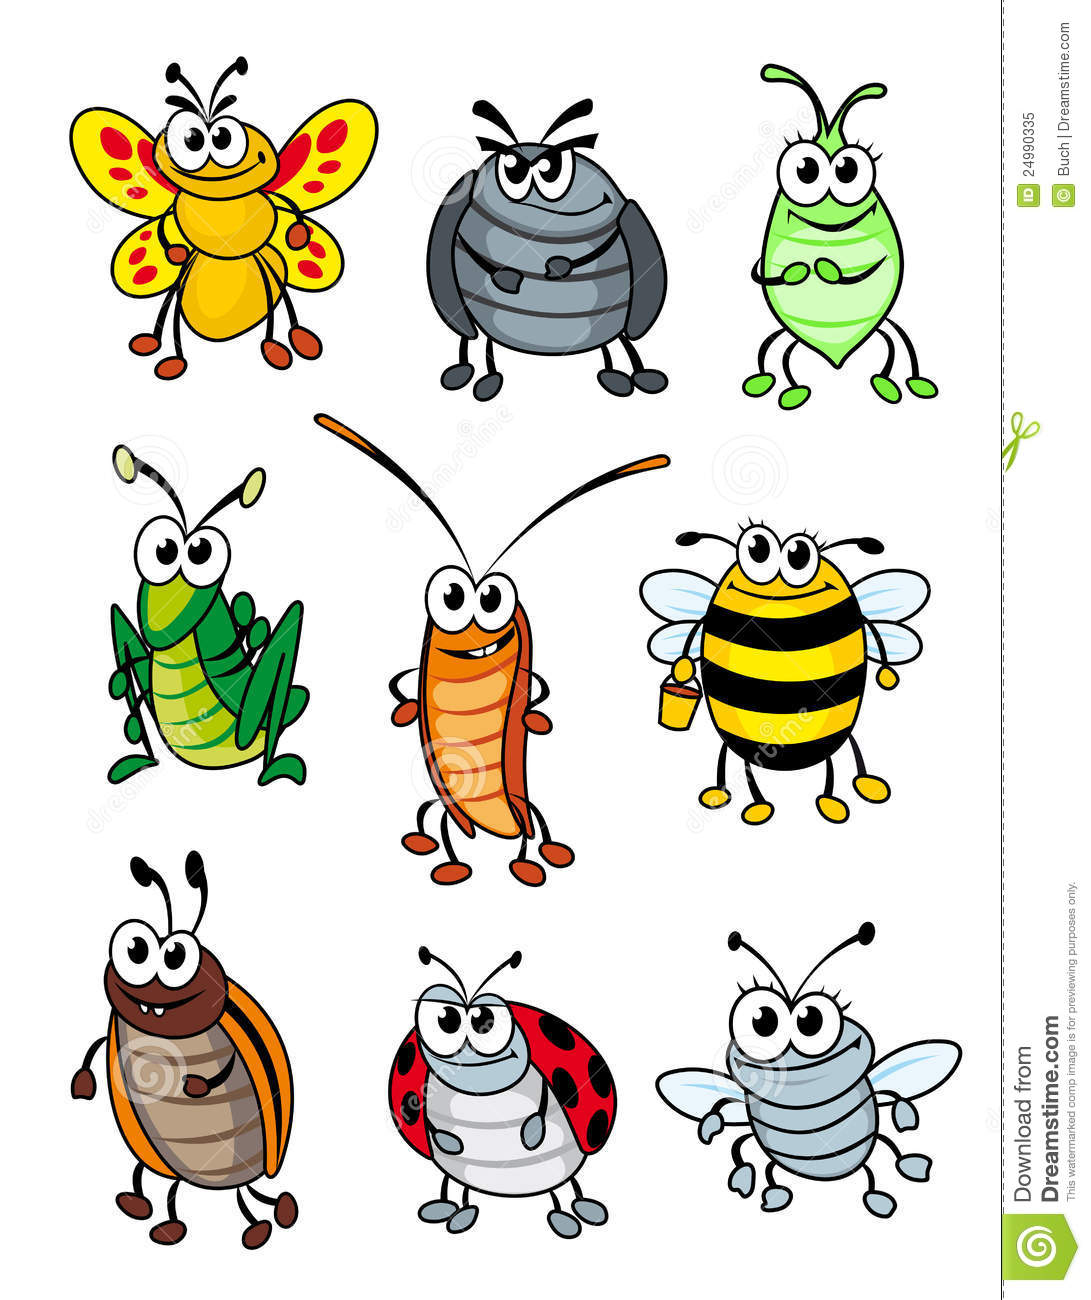 Cartoon Insects Royalty Free Stock Photo - Image: 24990335